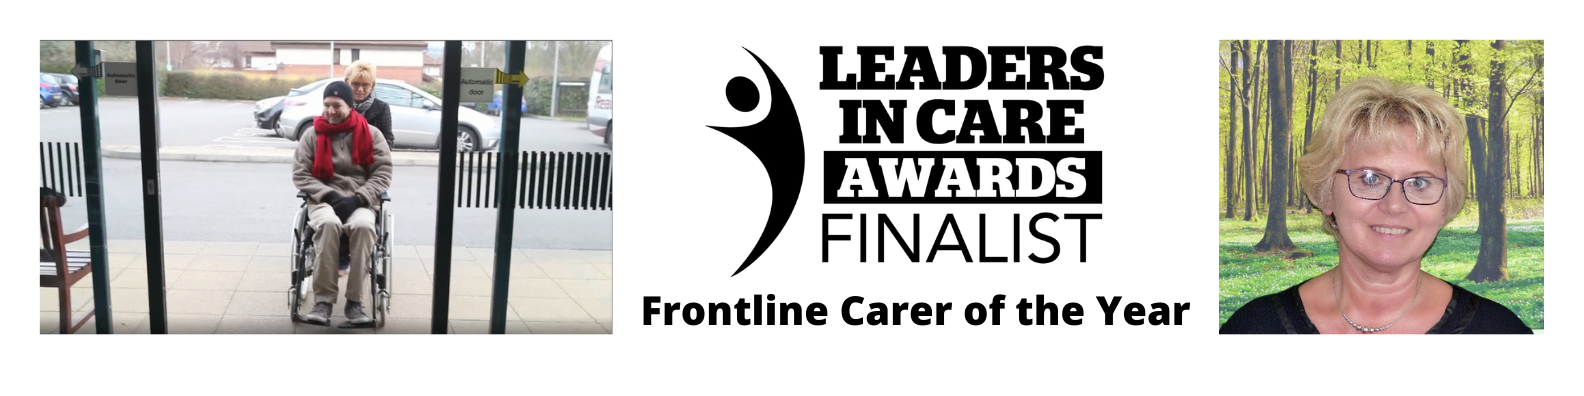 Finalist for Leaders in Care Awards 2021